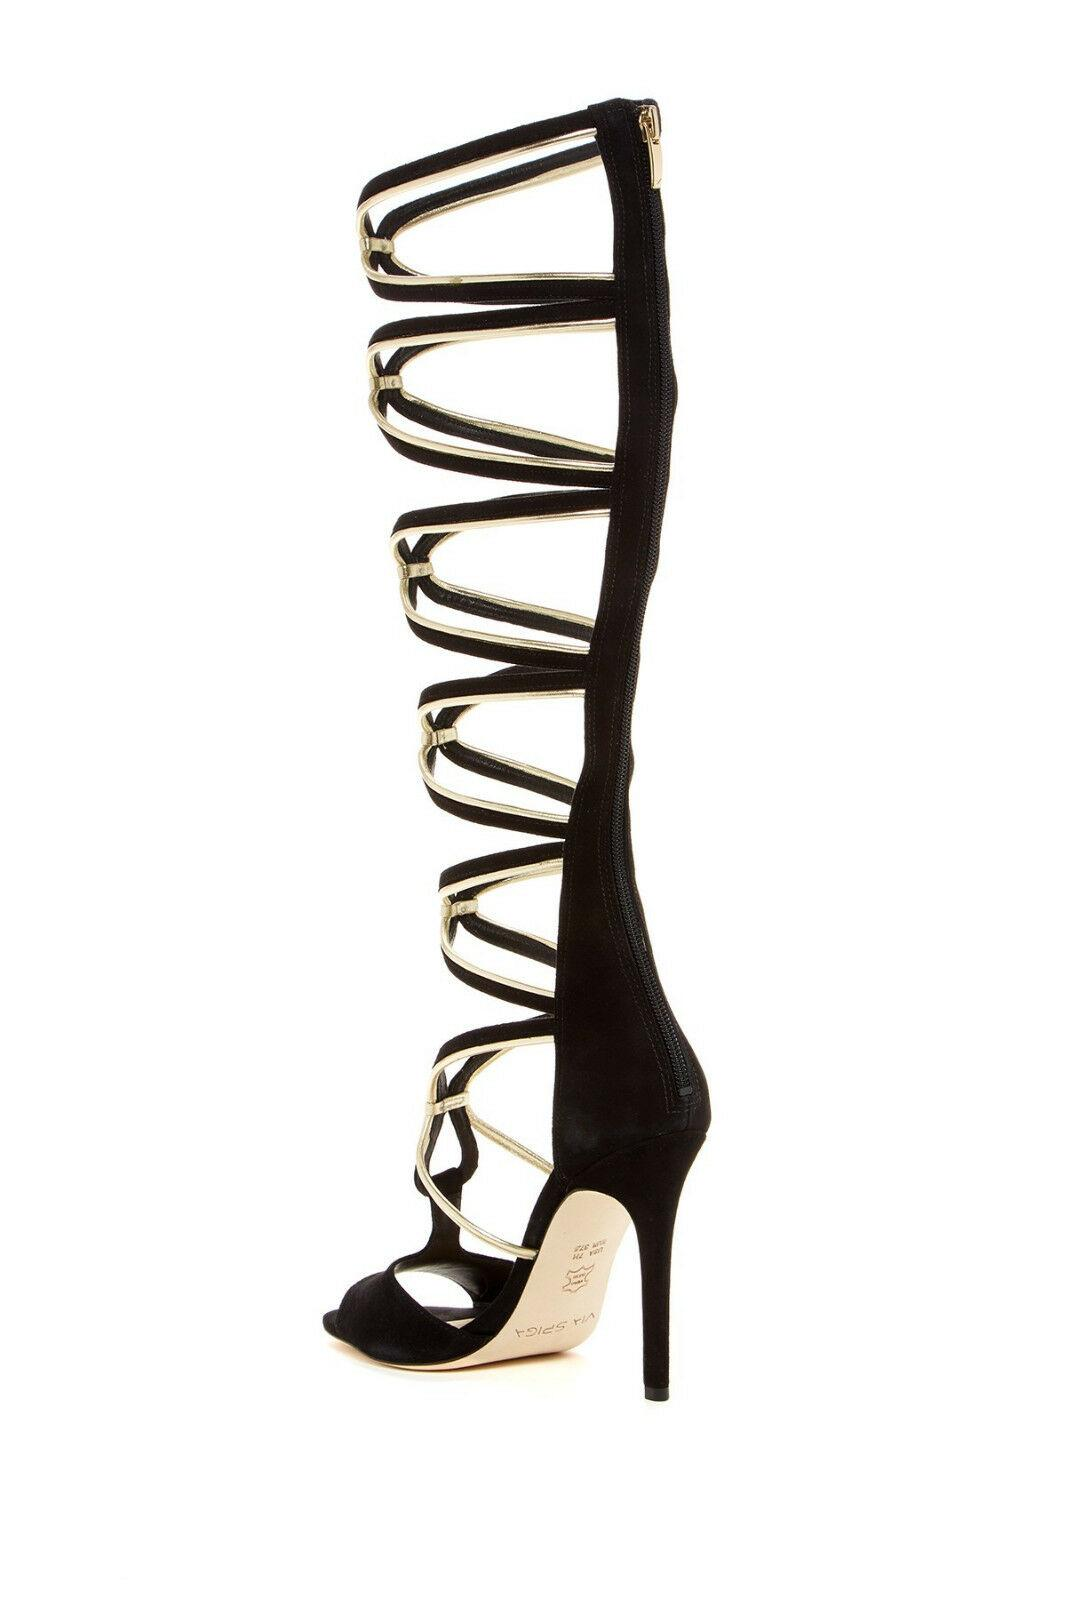 $350 Via Spiga Black Leather Tammrynn Gladiator Sandals Shoes 7.5- 37.5 Botie - Click Image to Close